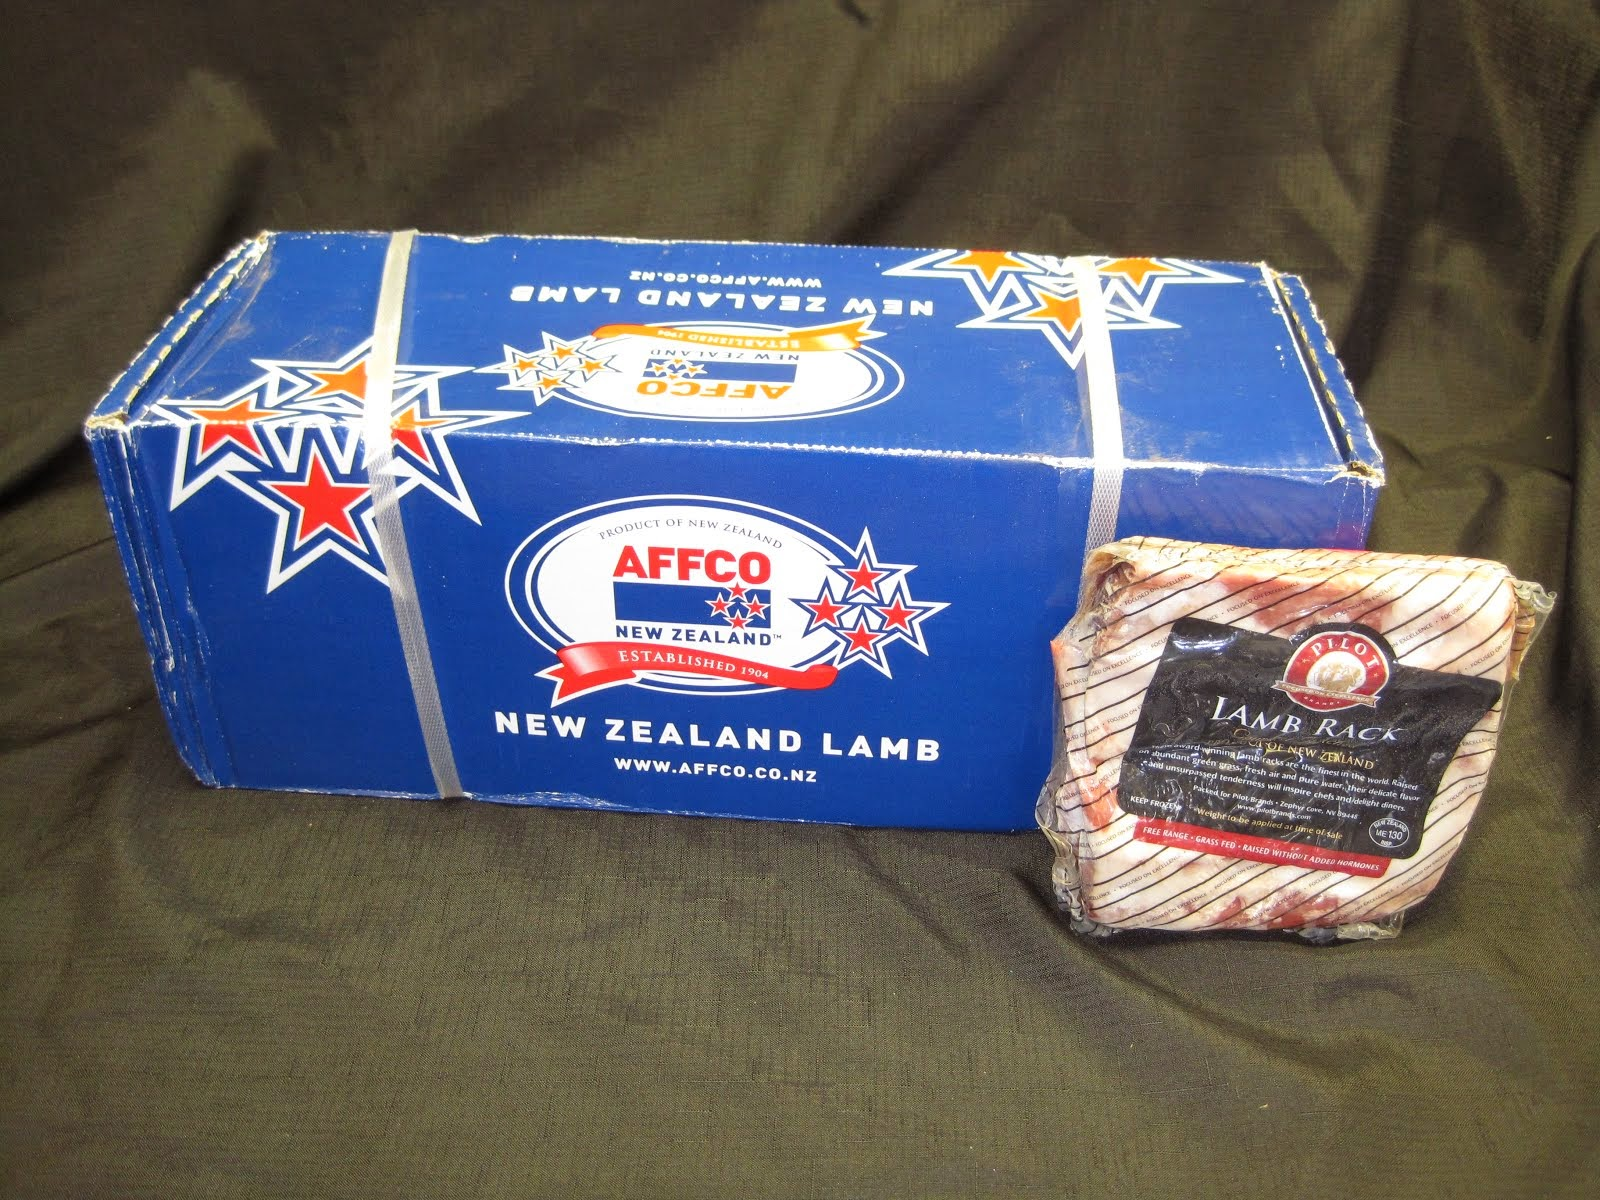 New Zealand Rack of Lamb - Item # 14200 & 14201 for the split